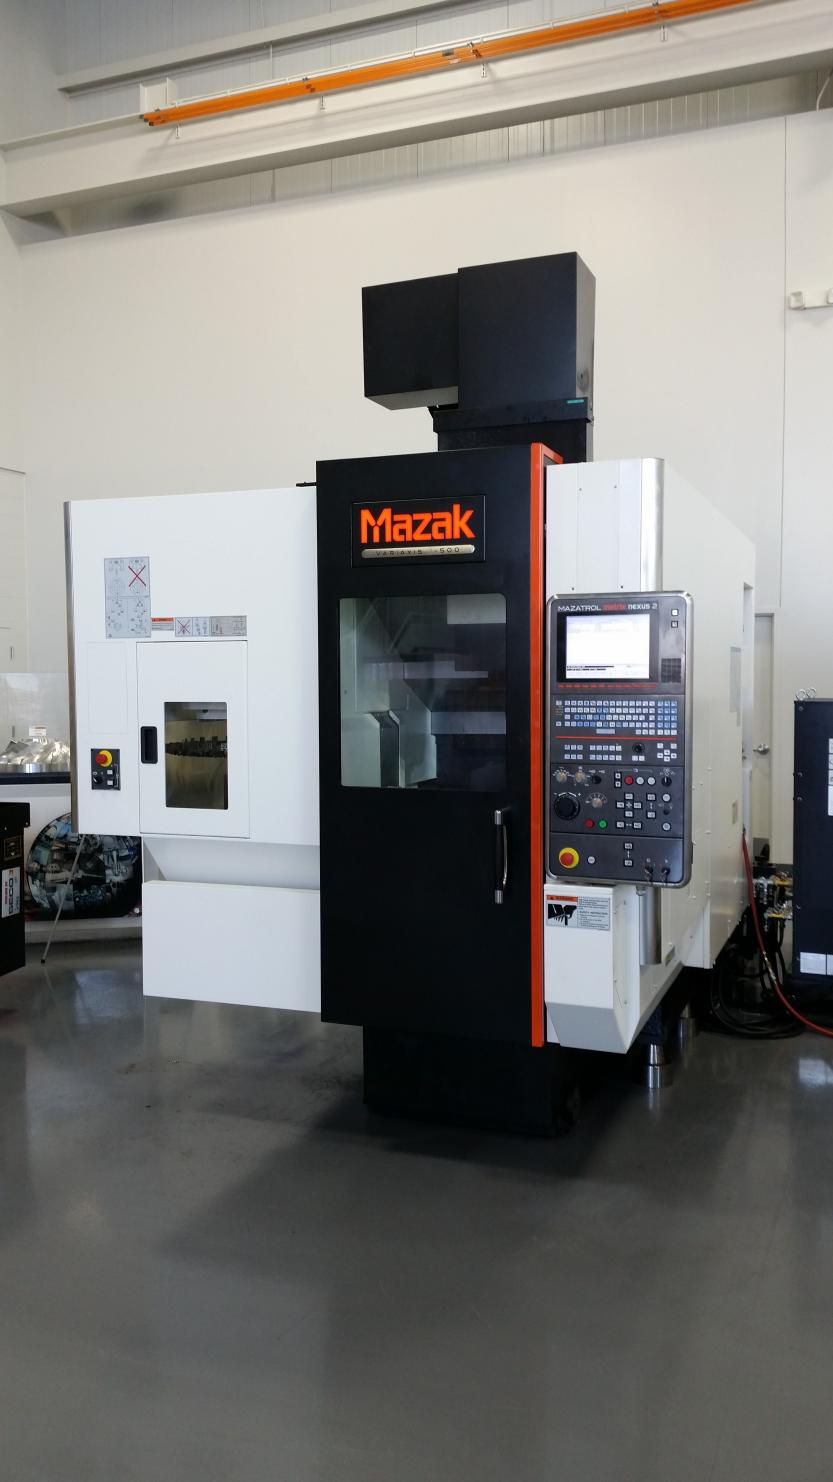 How Are The Mazak Variaxis Machines